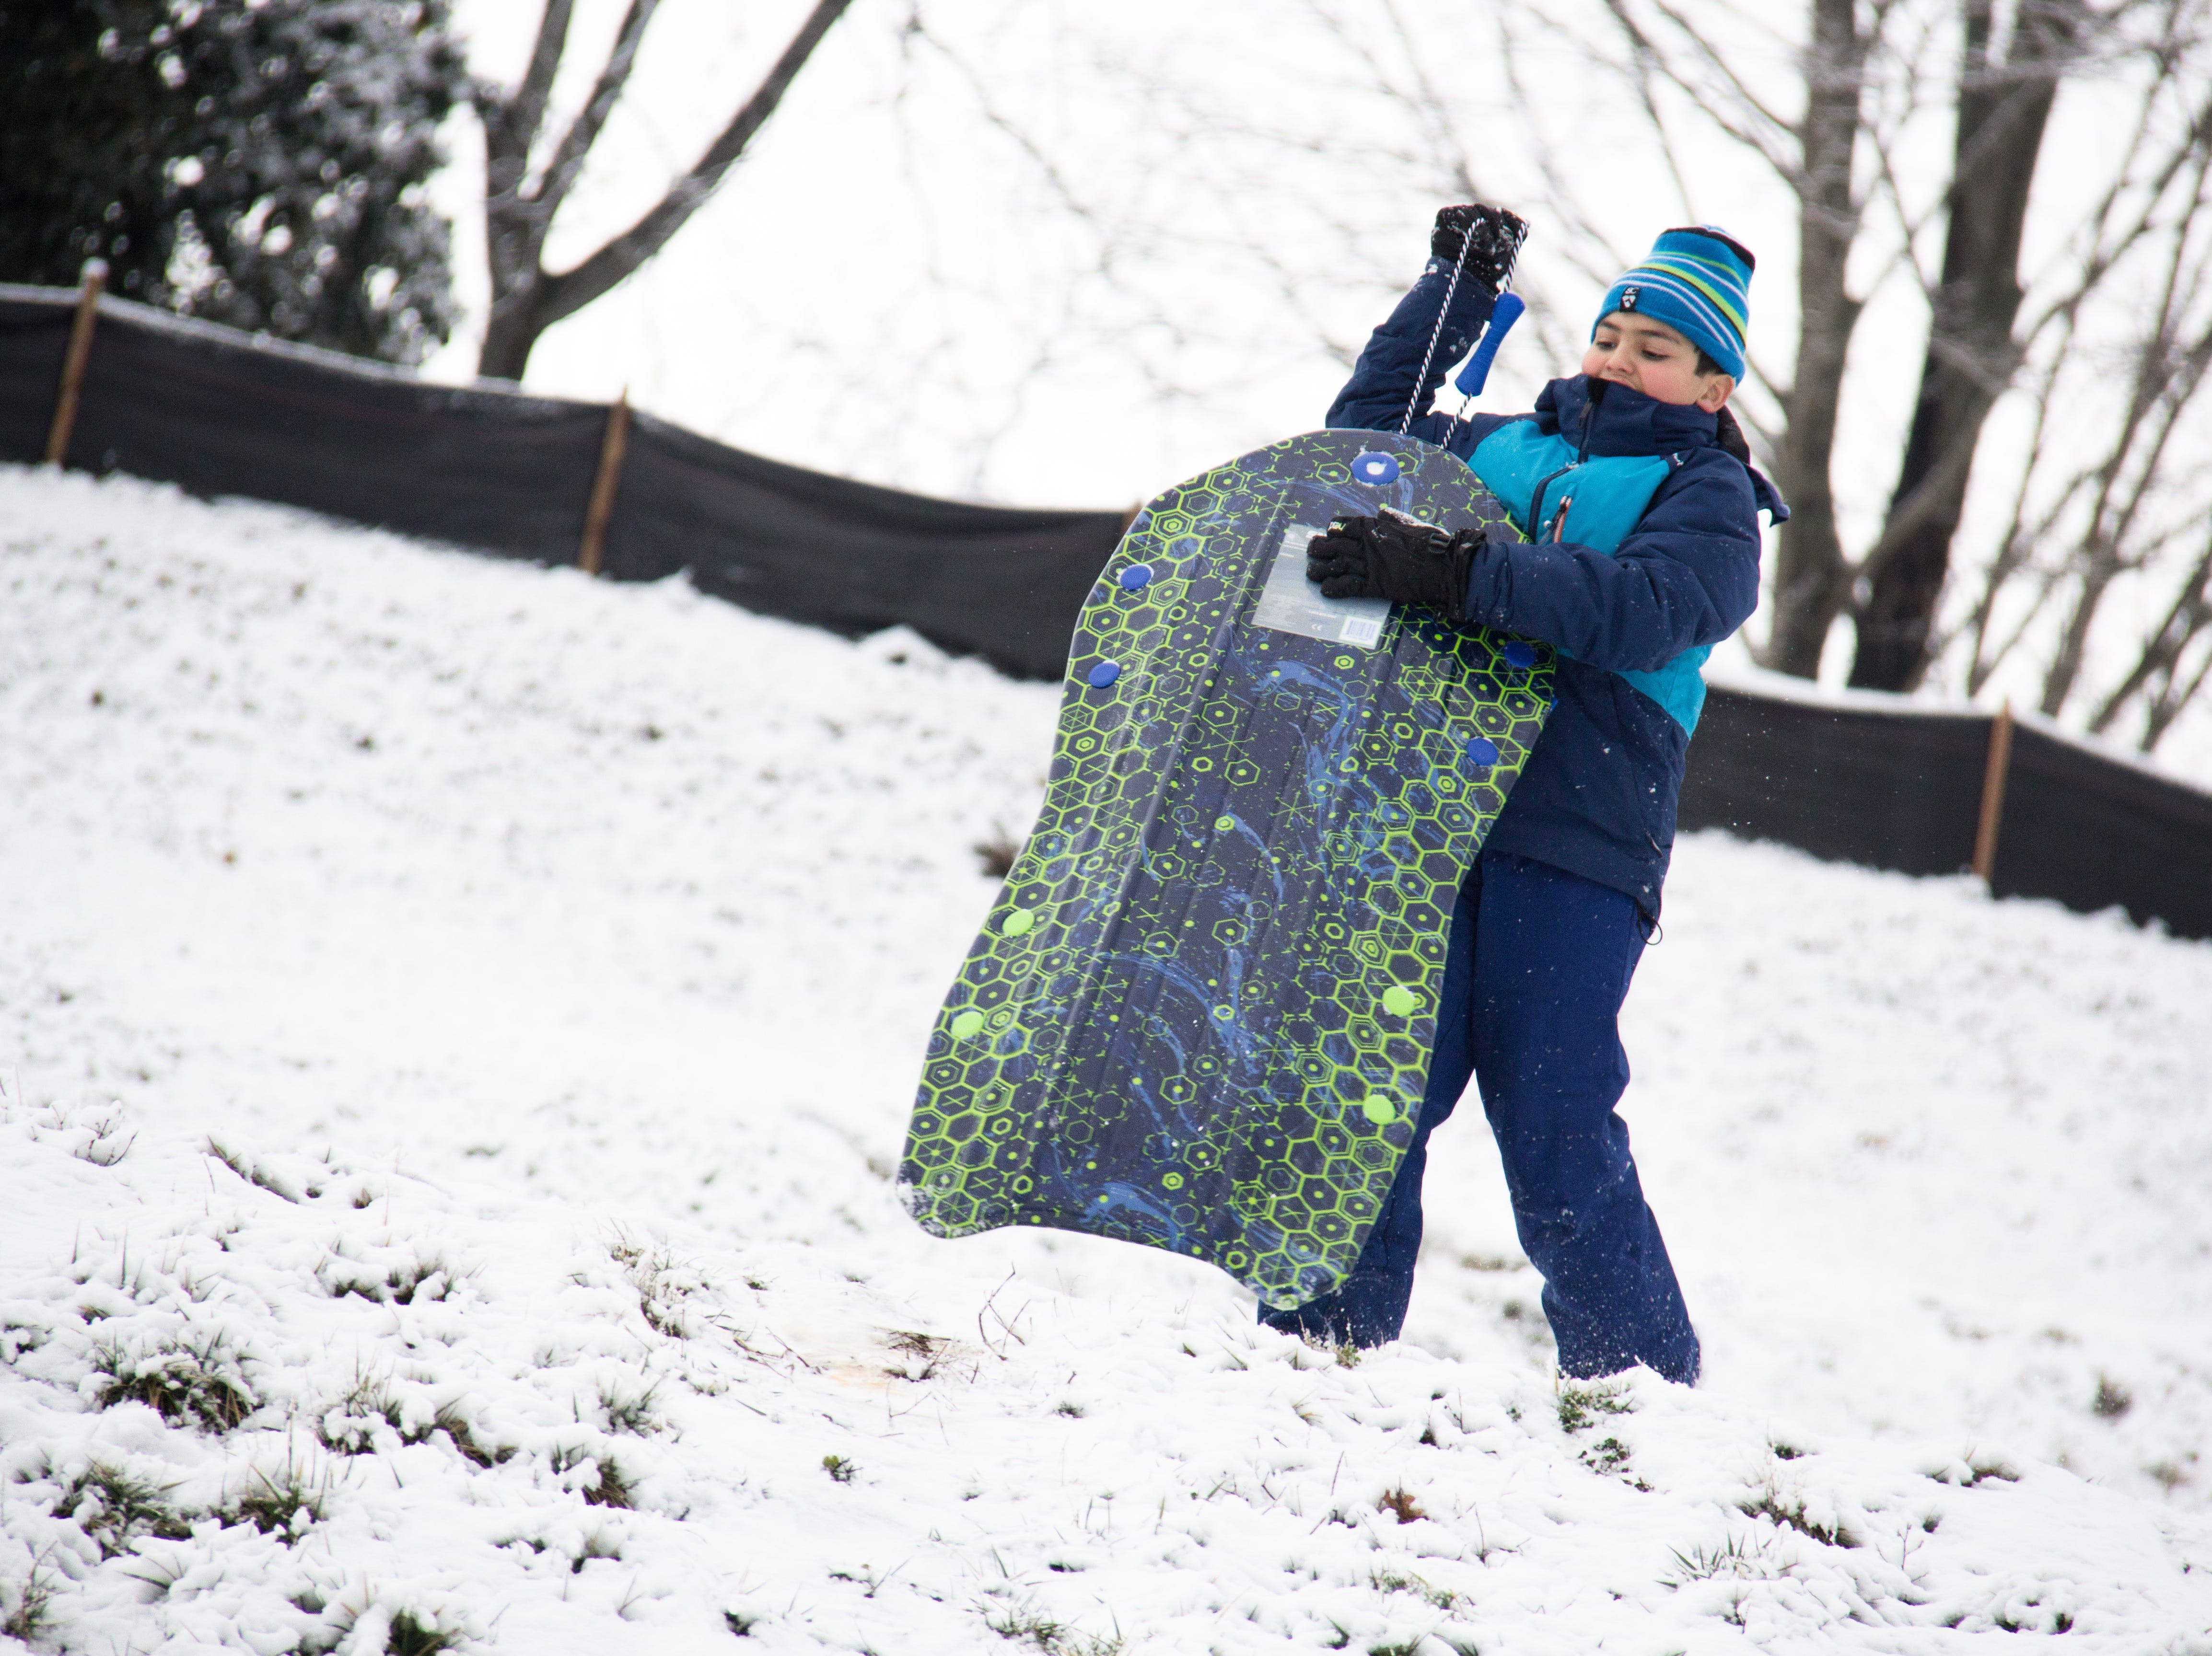 Nine-year-old Ian lugs his sled back tot the top of a hill at Lakeshore Park in Knoxville on Jan. 29, 2019.